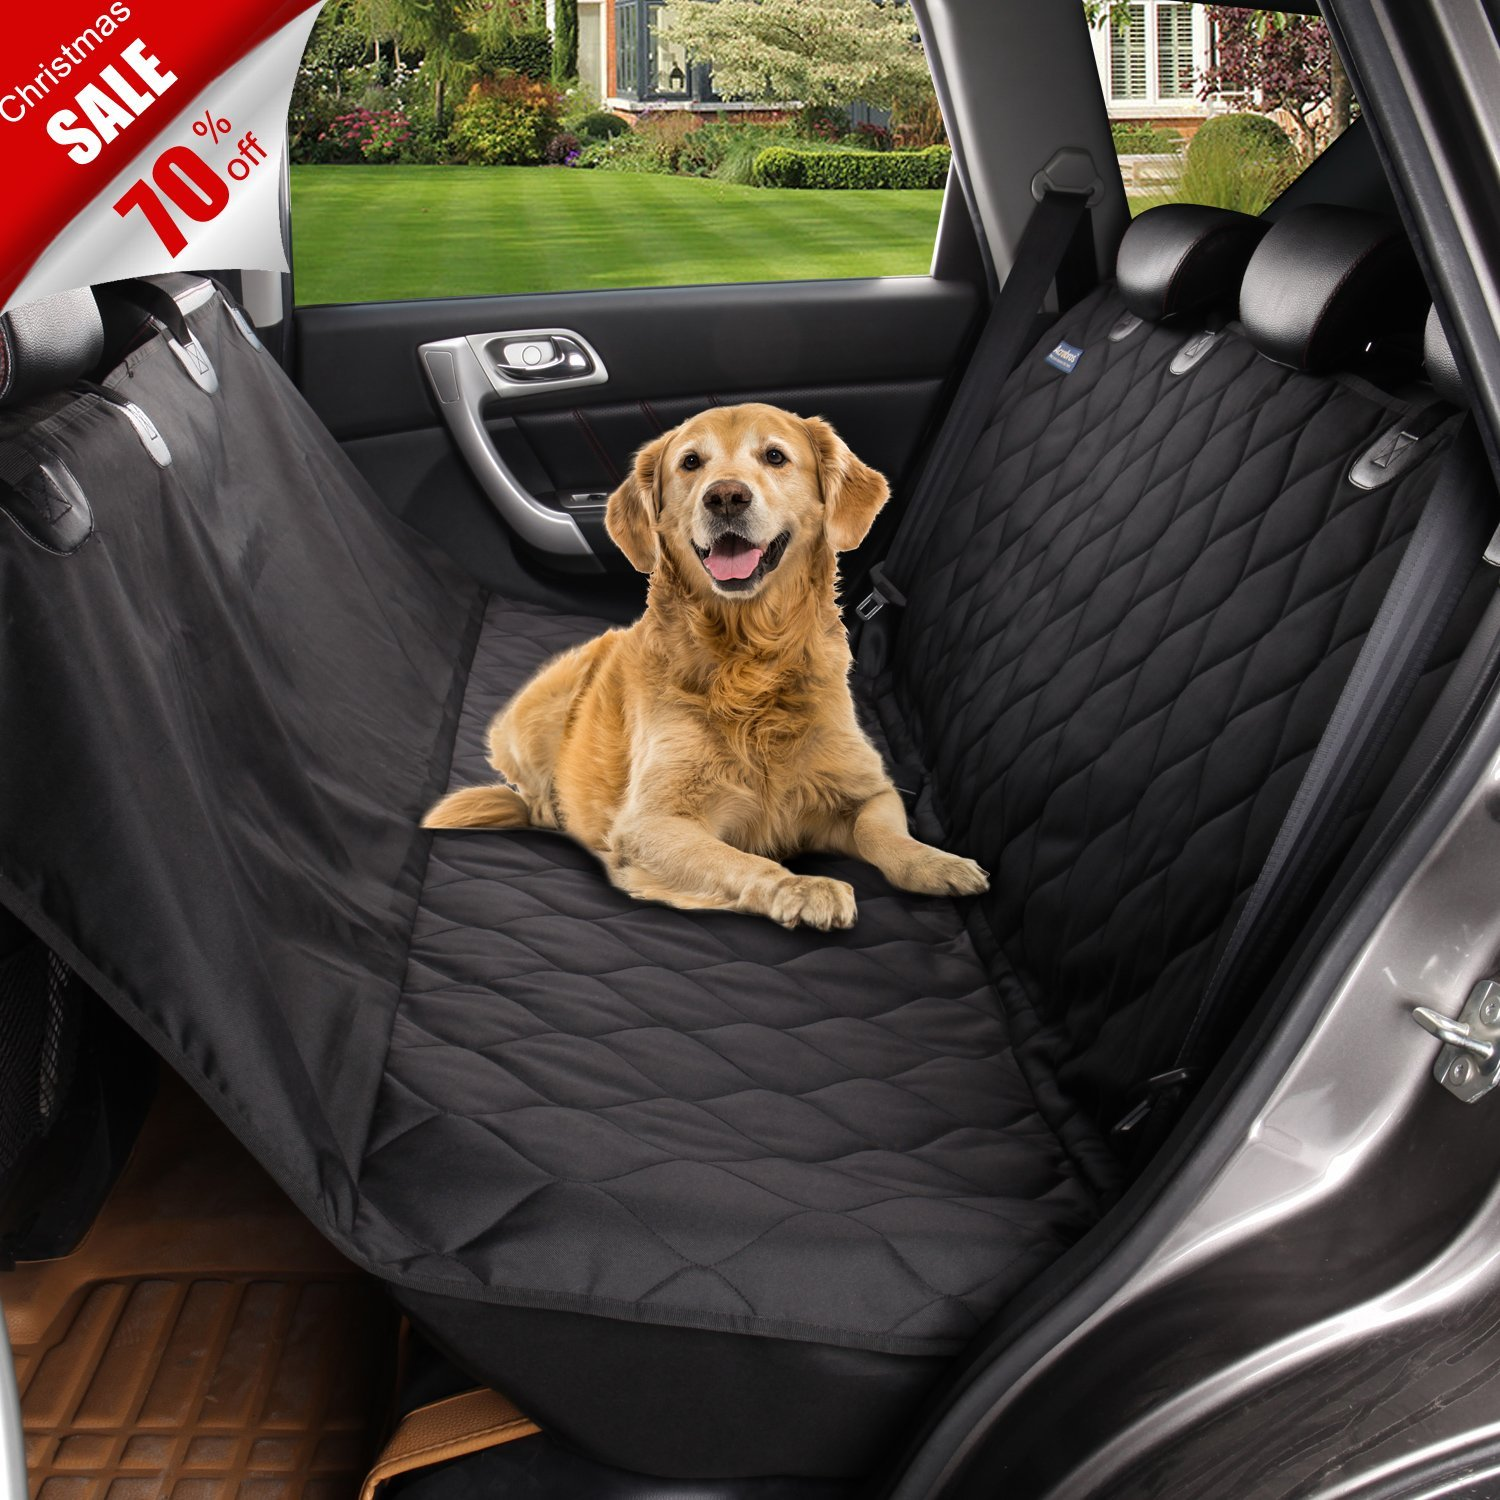 topist side with truck protection travel and your protect hammock durable belt seat oxford cloth dog waterproof dp scratch pet safety cover car